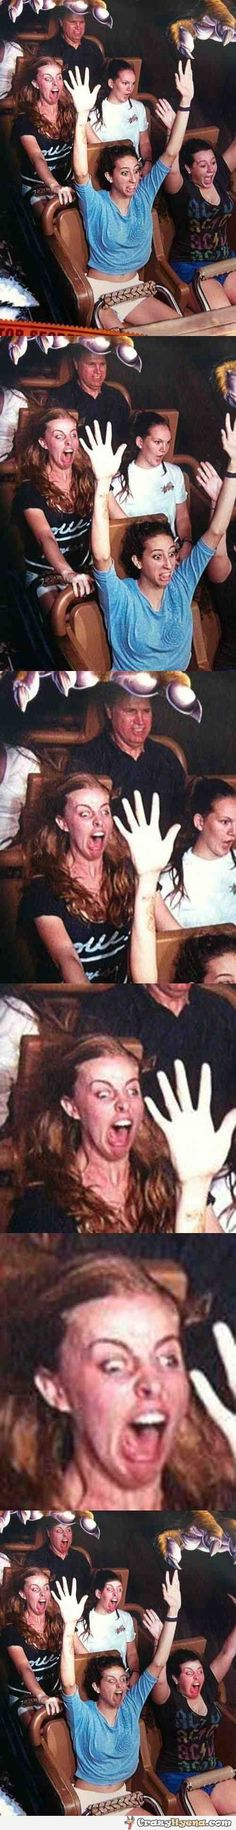 Funniest face swap on a roller coaster!!!!!